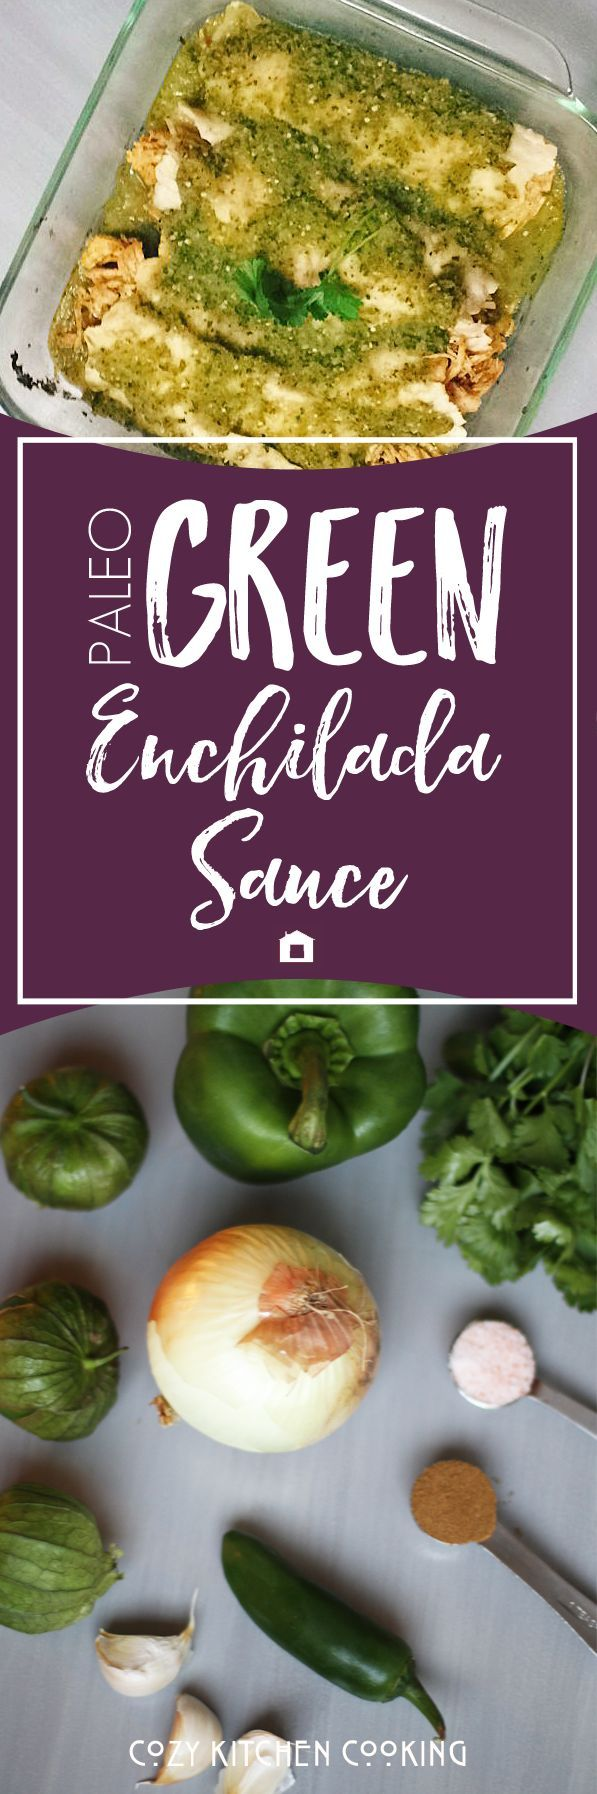 This Paleo Green Enchilada Sauce is so full of flavor! It tastes incredible as a salsa, on tacos, enchiladas, etc. It also contains healing bone broth. And it can be made in the Instant Pot. Save for later.: